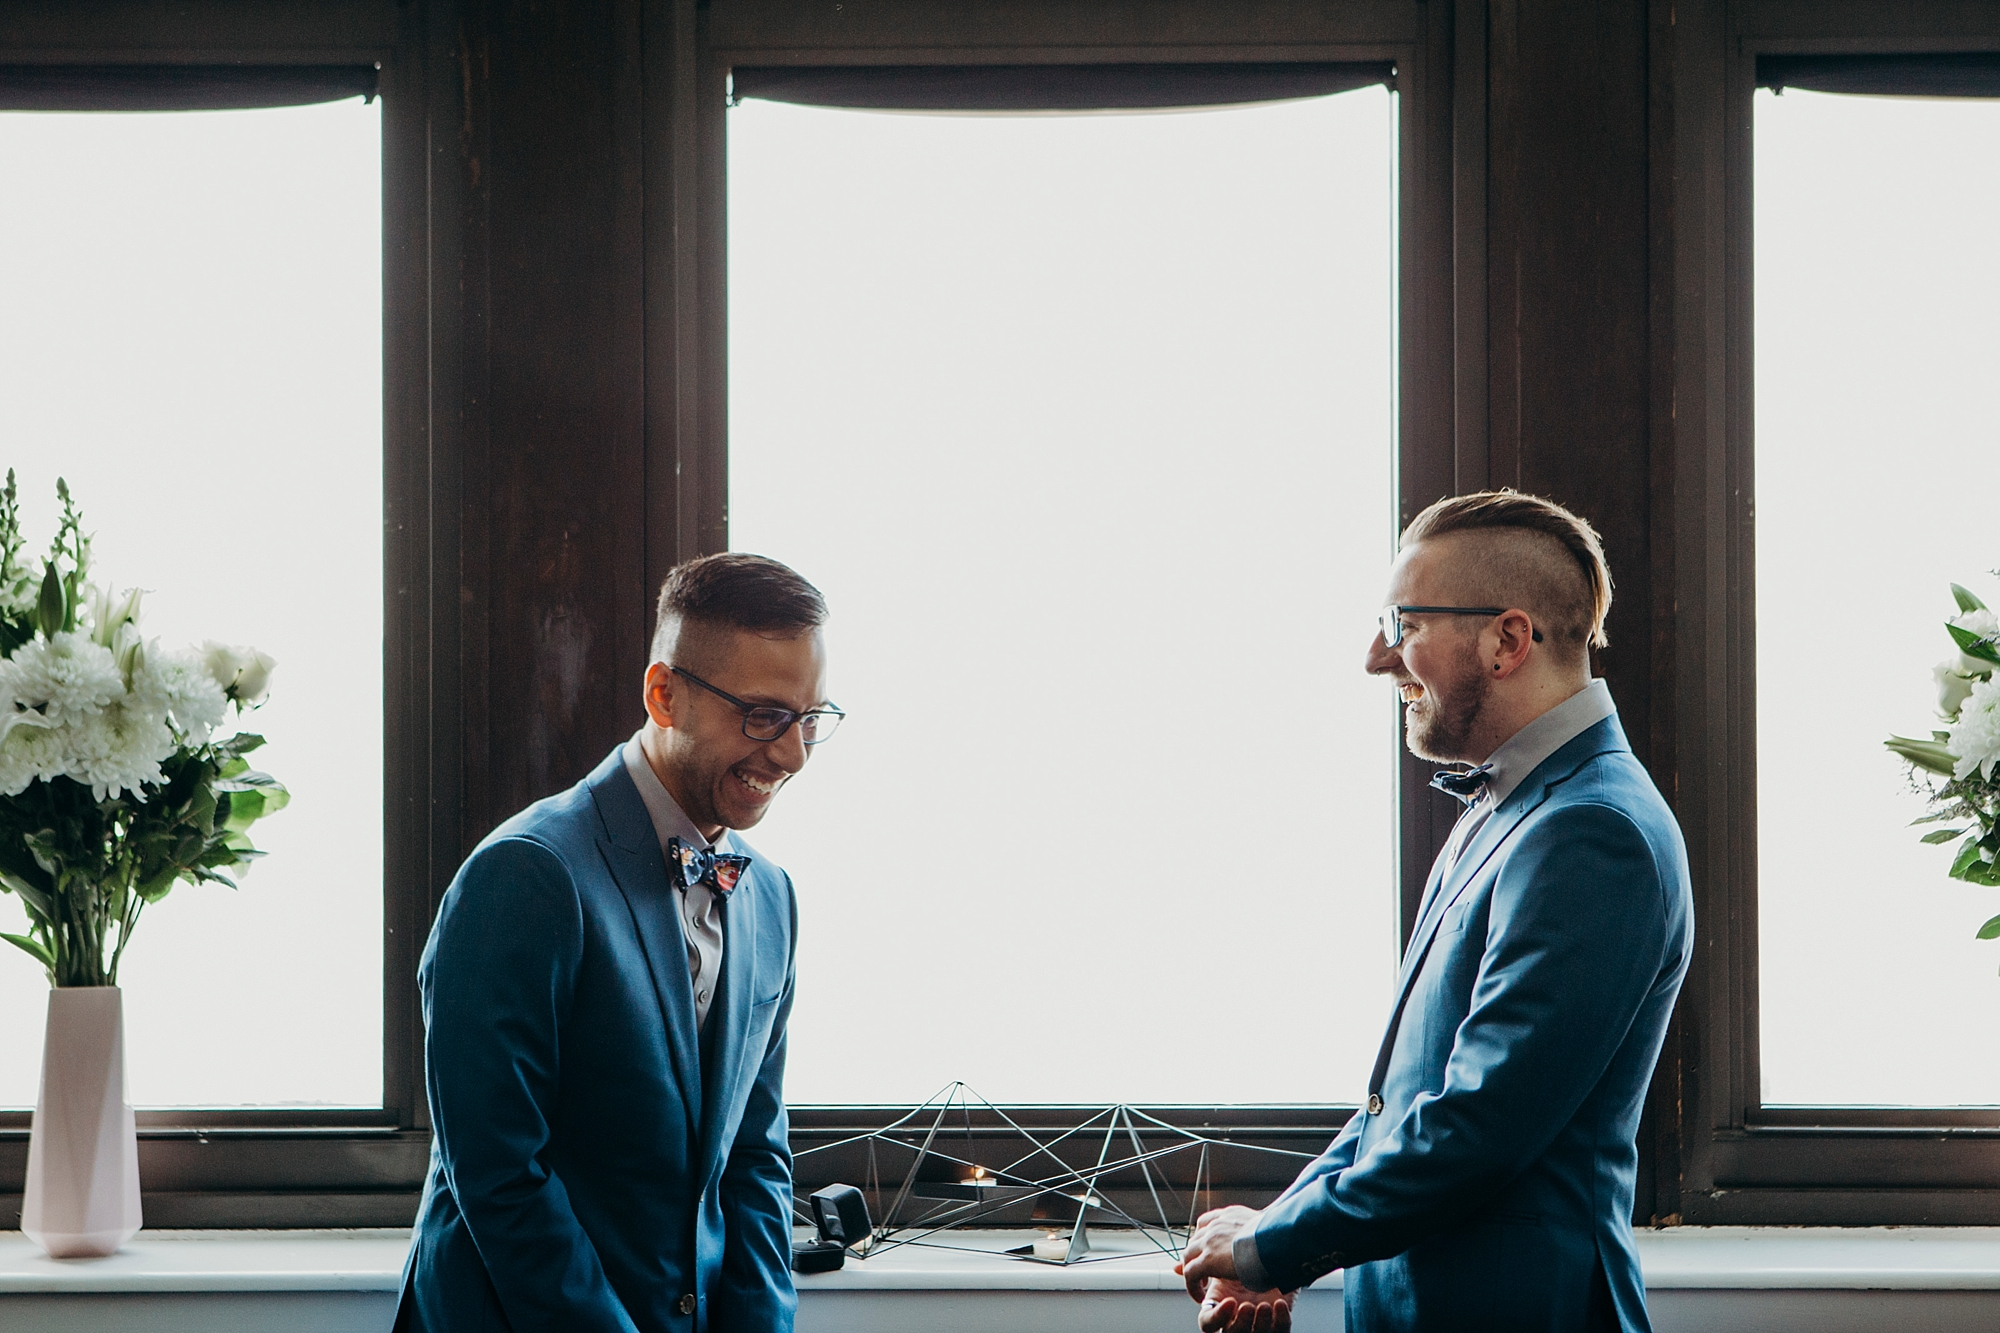 Joe_Mac_Creative_Philadelphia_Philly_LGBT_Gay_Engagement_Wedding_Photography__0067.jpg